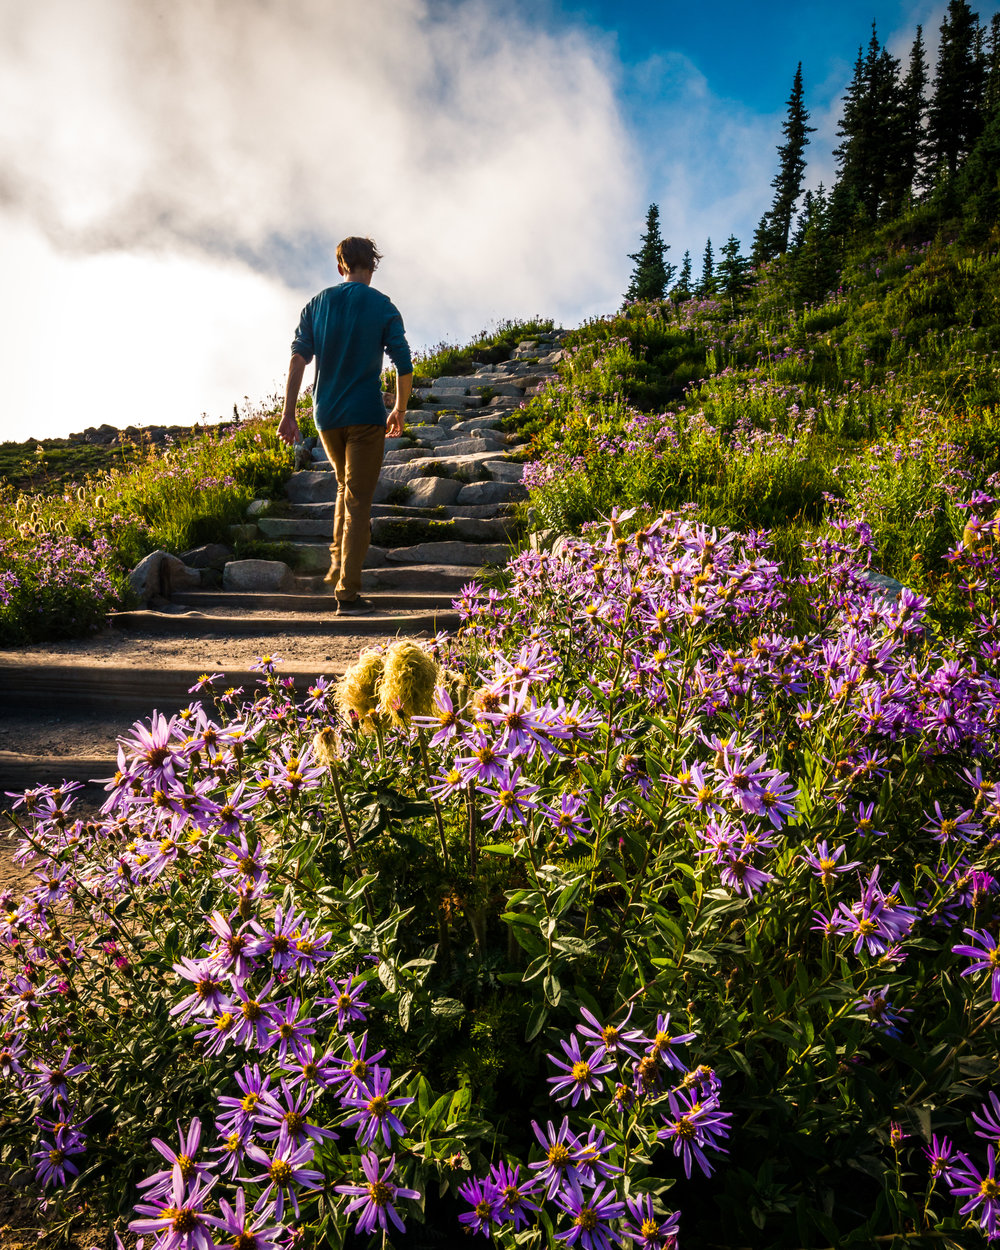 Mt. Rainier has amazing trails for its large number of visitors to hike.